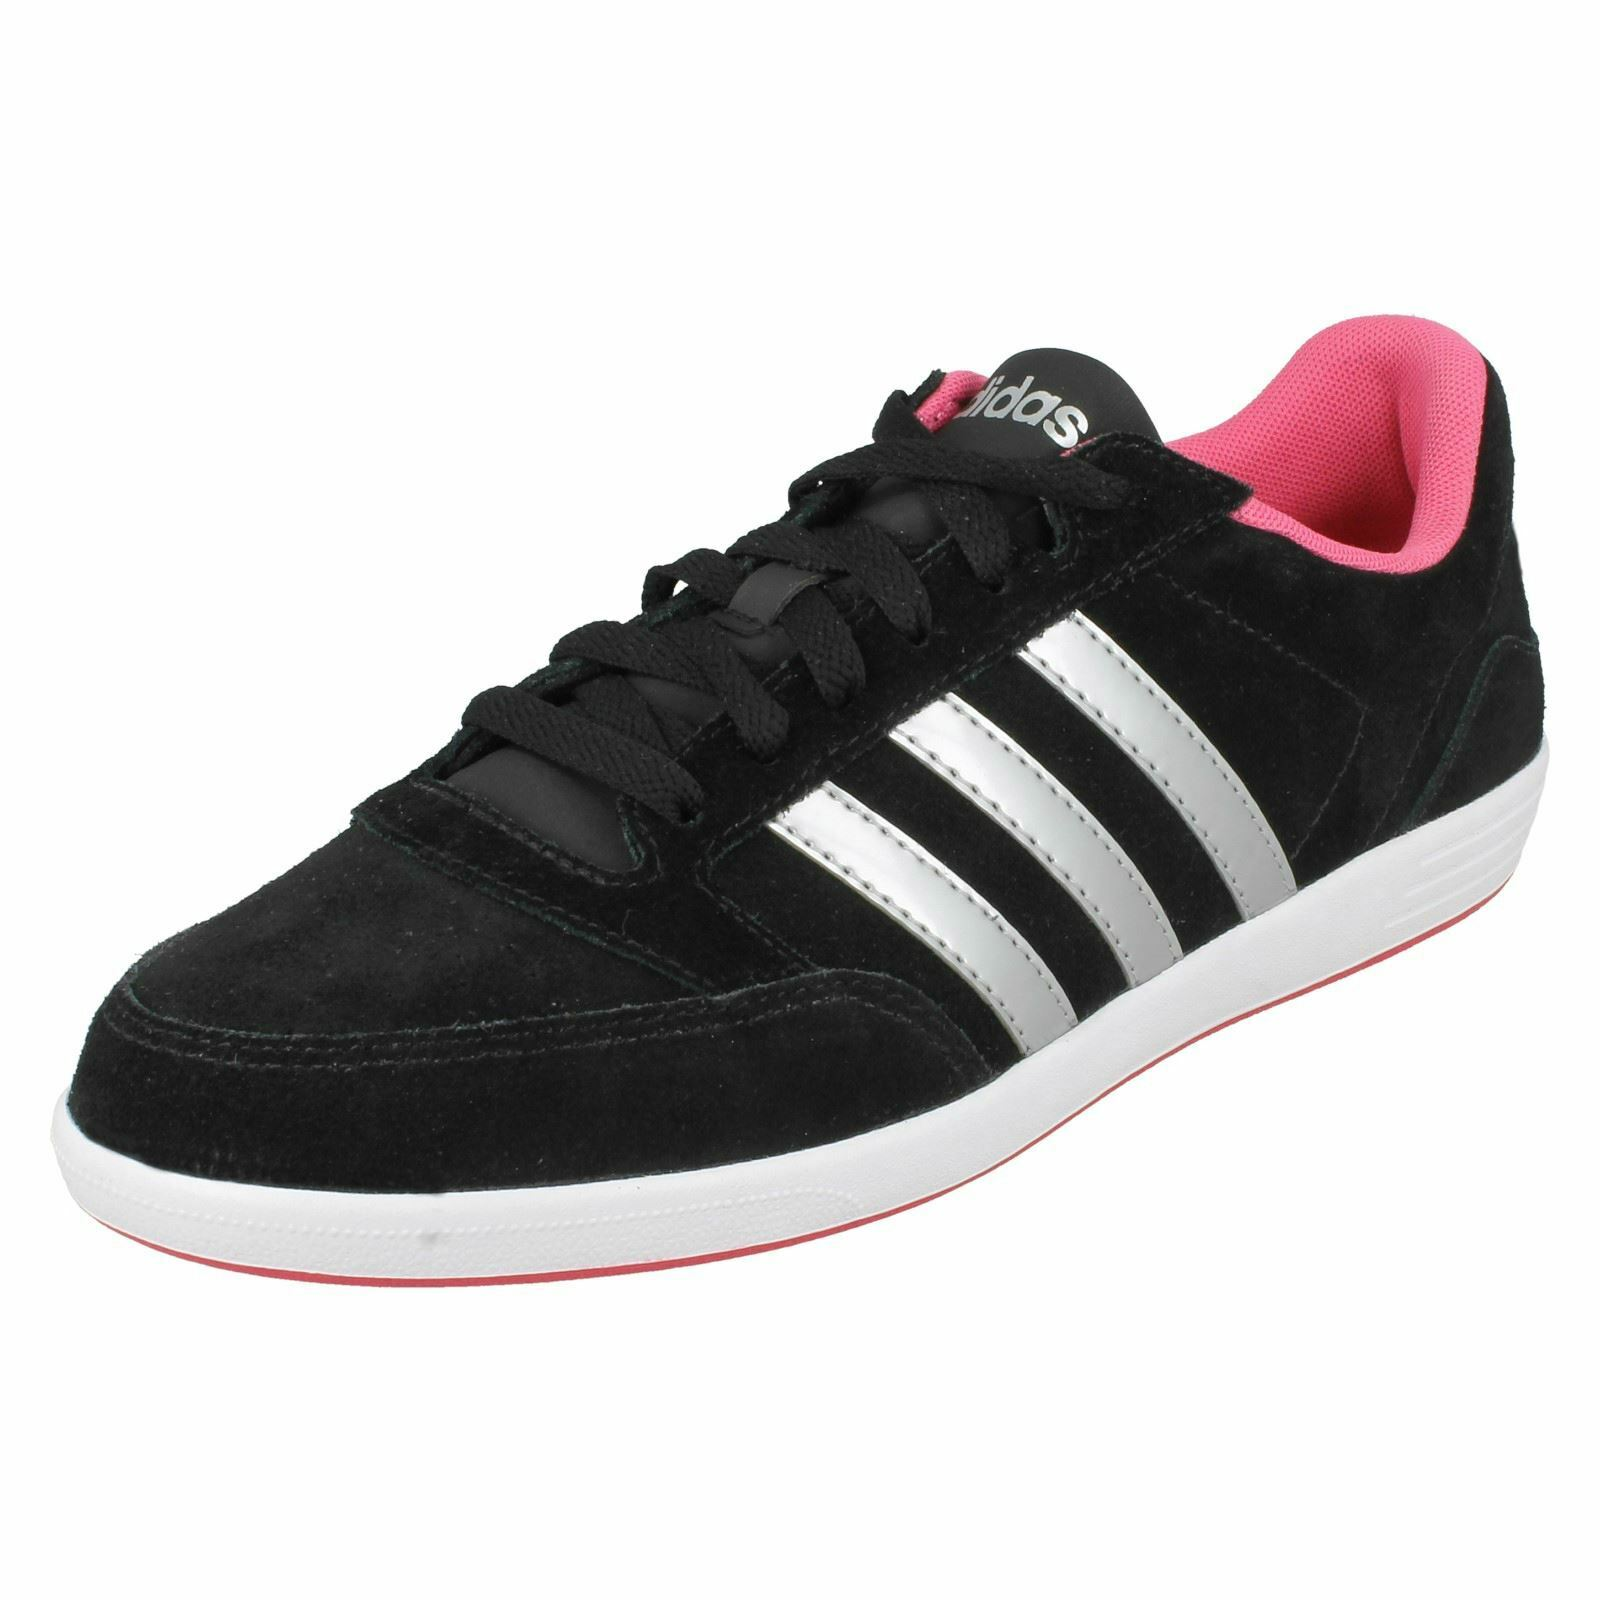 Ladies Adidas Hoops VL W AW5372 Lace Up Sport Trainers